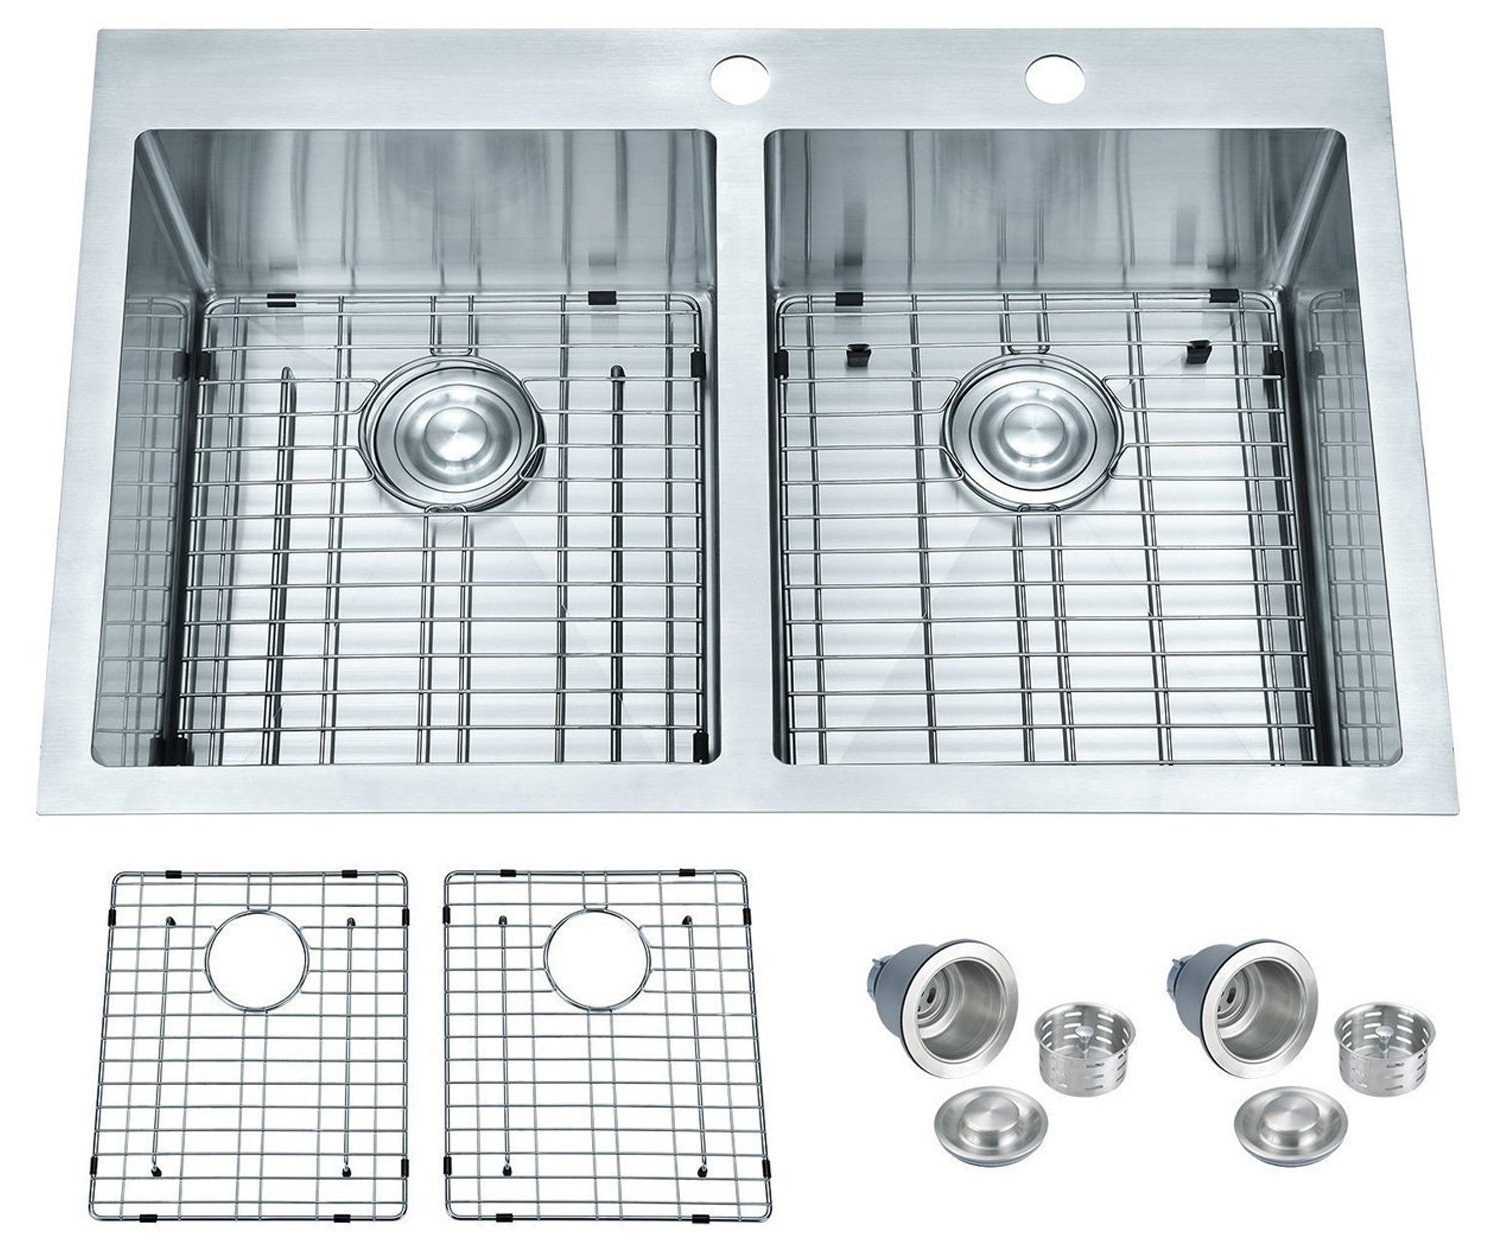 BILLION Topmount or Drop-in Sink 50/50 Equal Double Bowl Drop-in Overmount 16 Gauge Handcrafted Stainless Steel Kitchen Sink, with Bottom Grid and Drainer, 33'' L x 22'' W x 10'' H